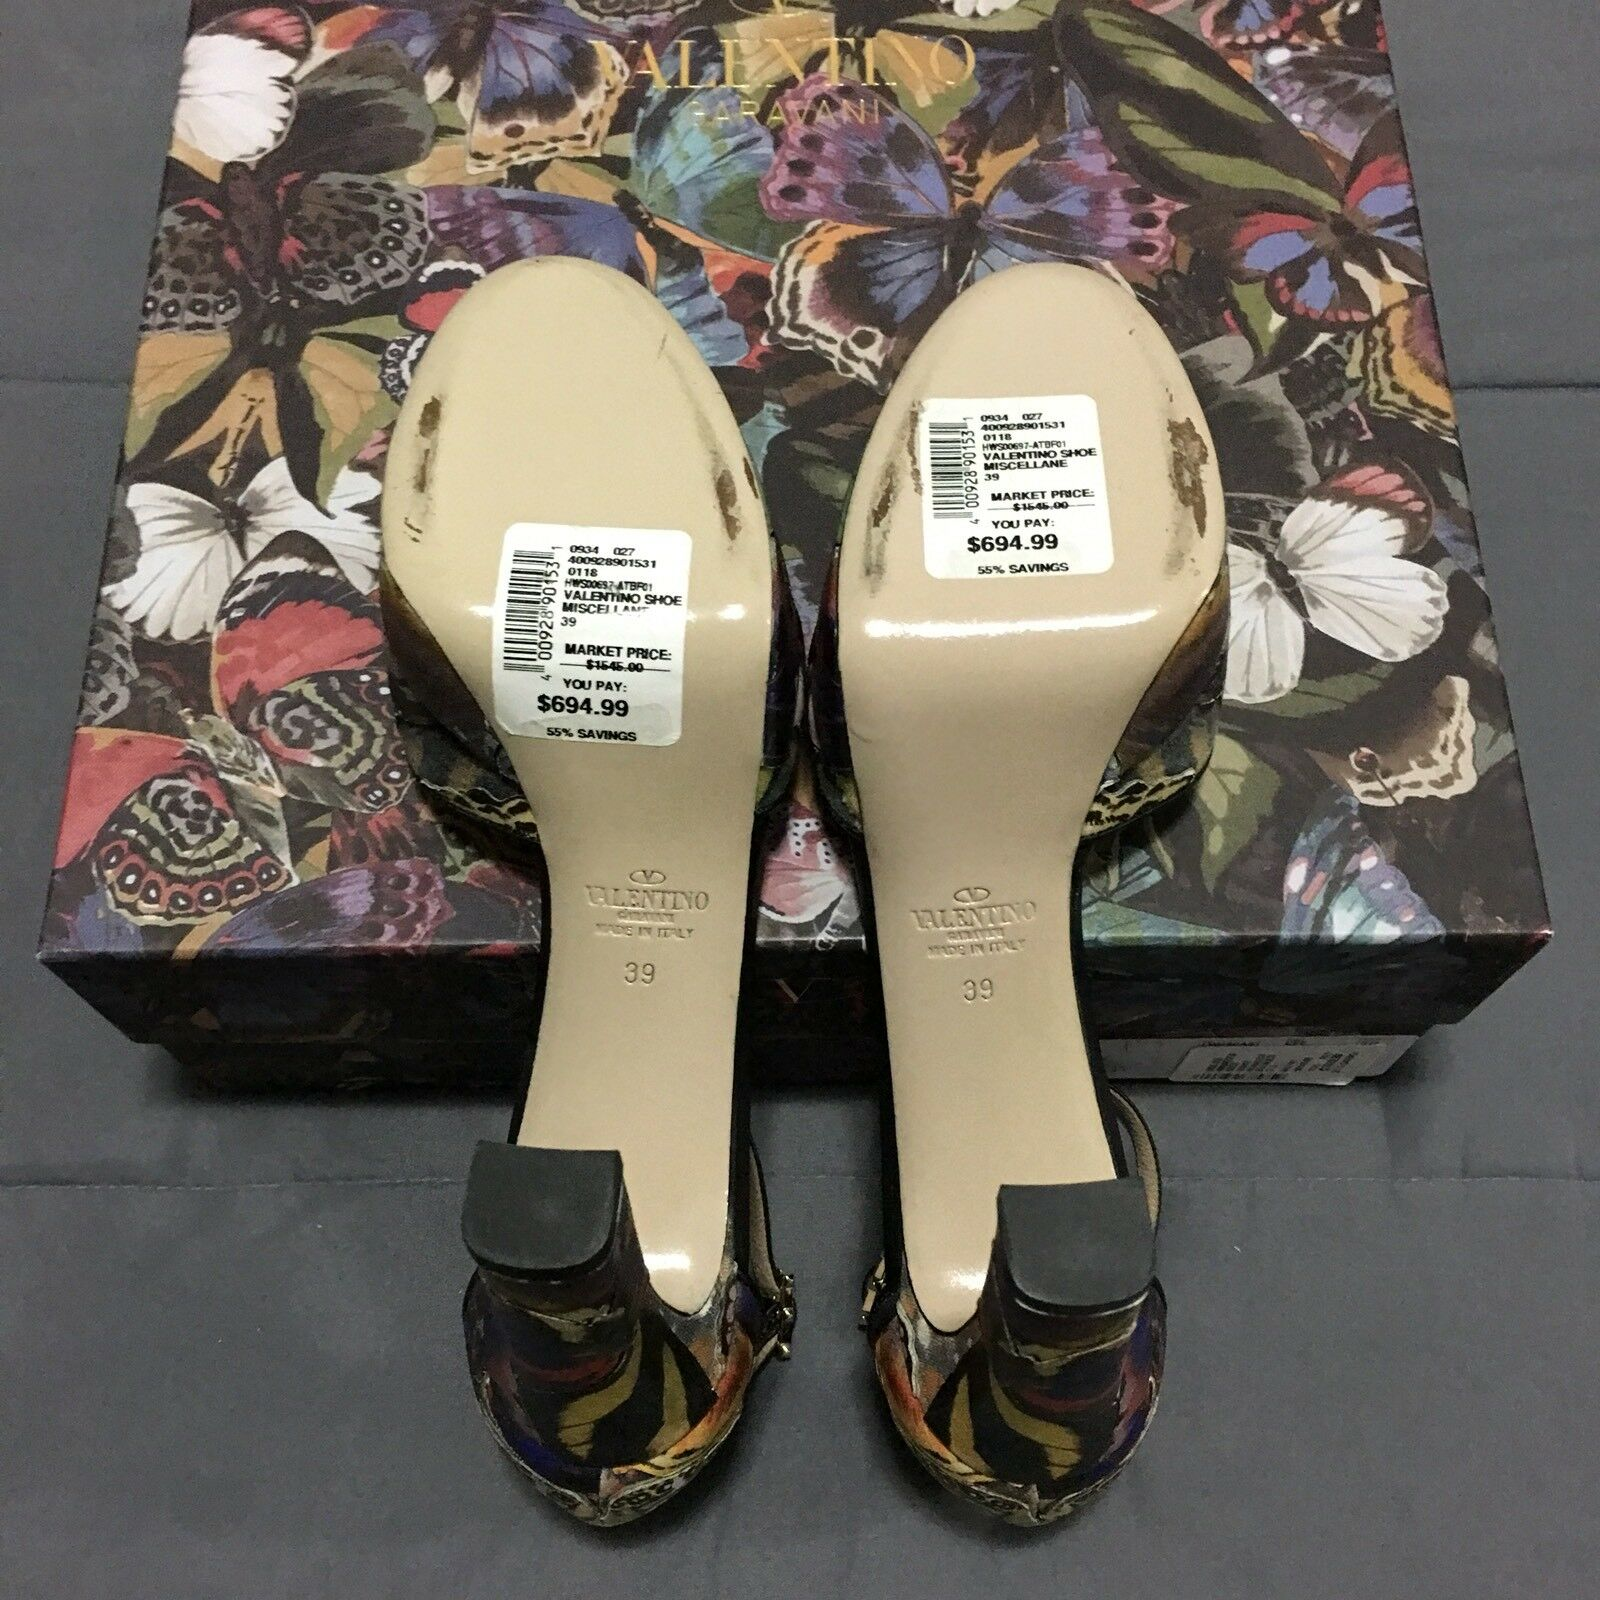 Valentino Garavani Camubutterfly Camo Multi Color Size Stud Heels schuhes Italy Size Color 39 f95101